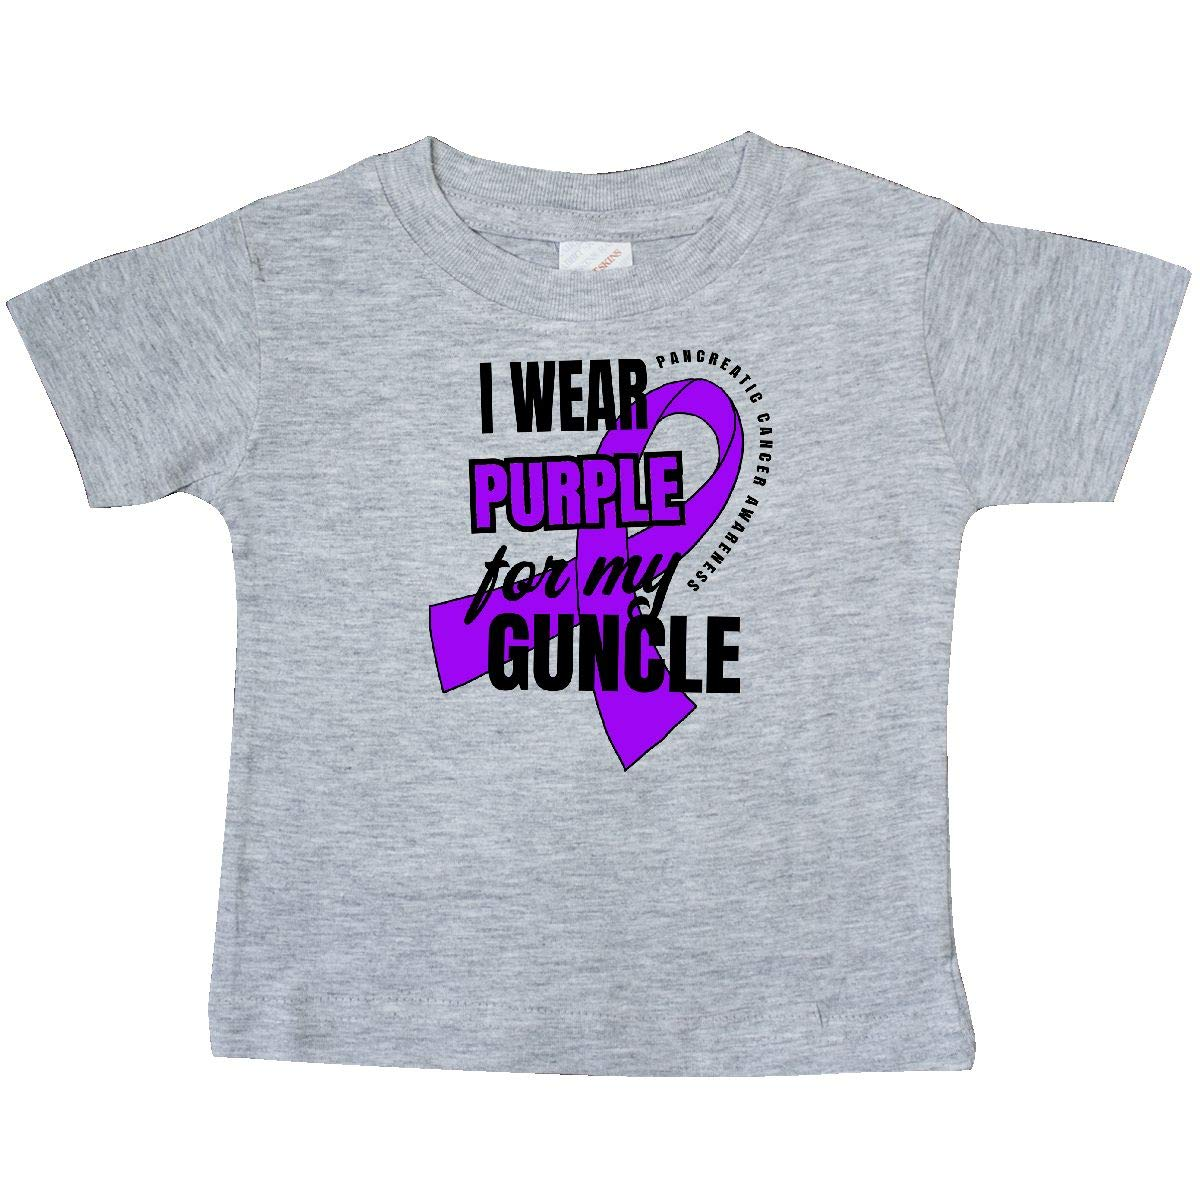 inktastic I Wear Purple for My Guncle Pancreatic Cancer Awareness Baby T-Shirt